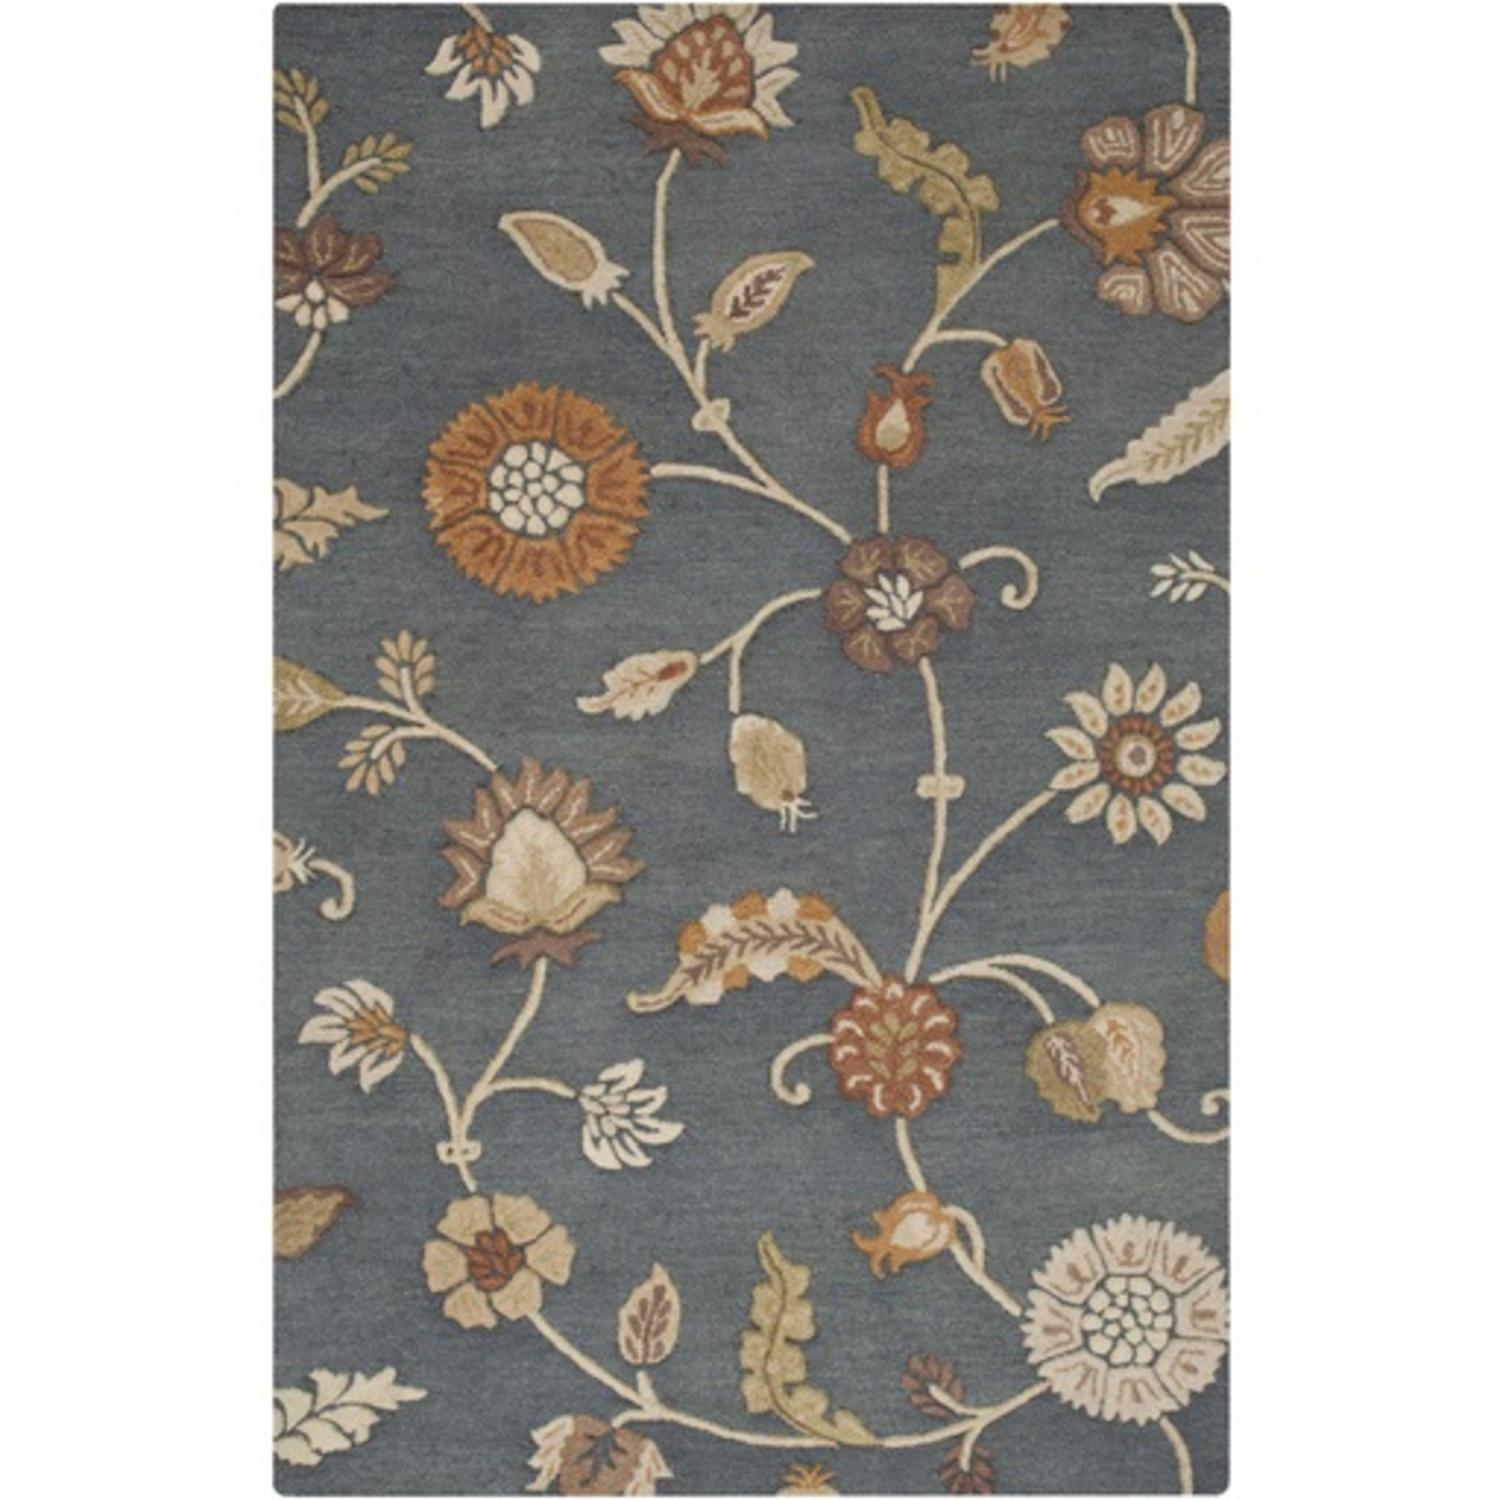 2' X 3' Breezy Garden Teal Blue, Orange Rust And Taupe